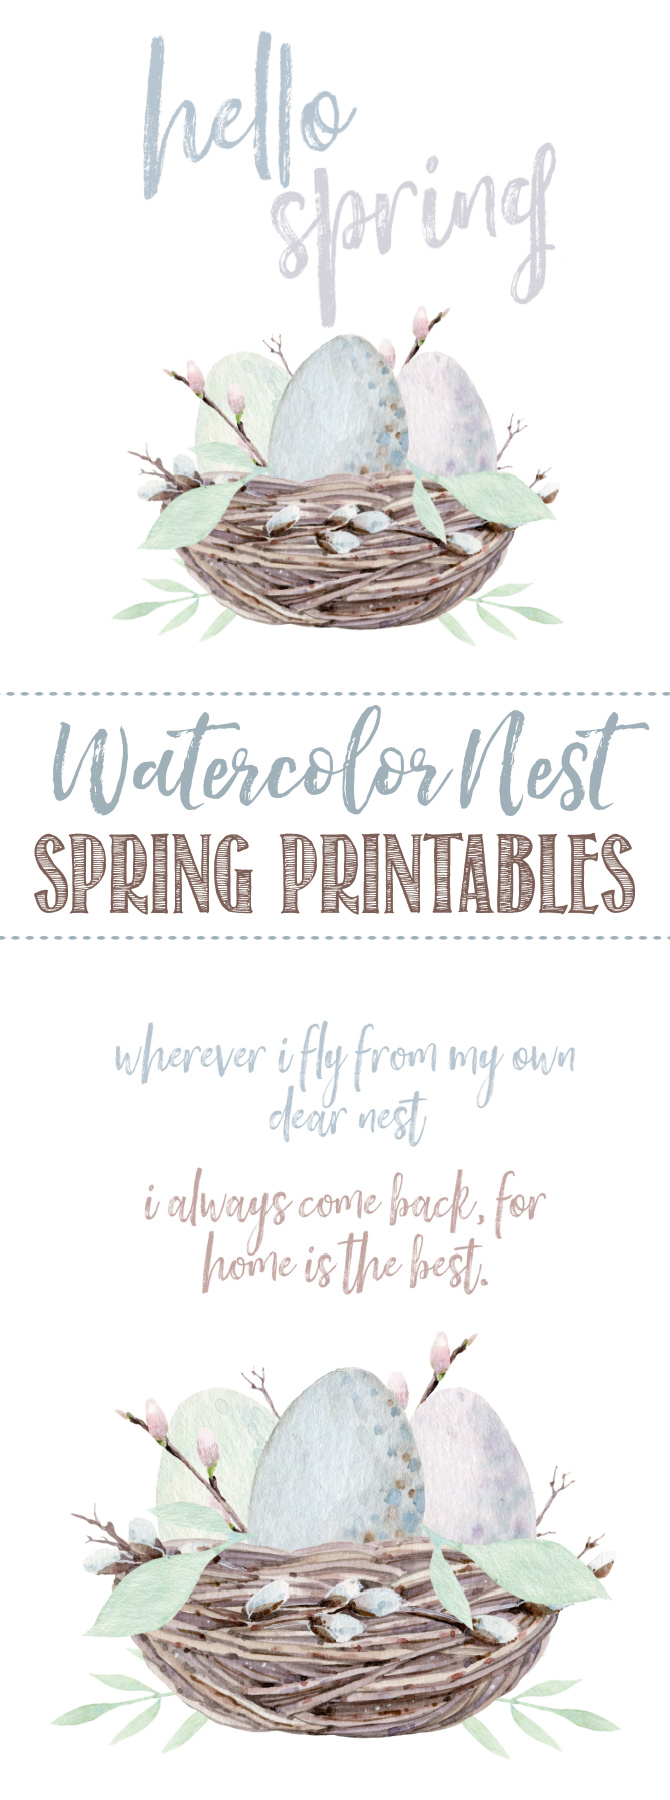 Collection of free spring printables with watercolor nest.